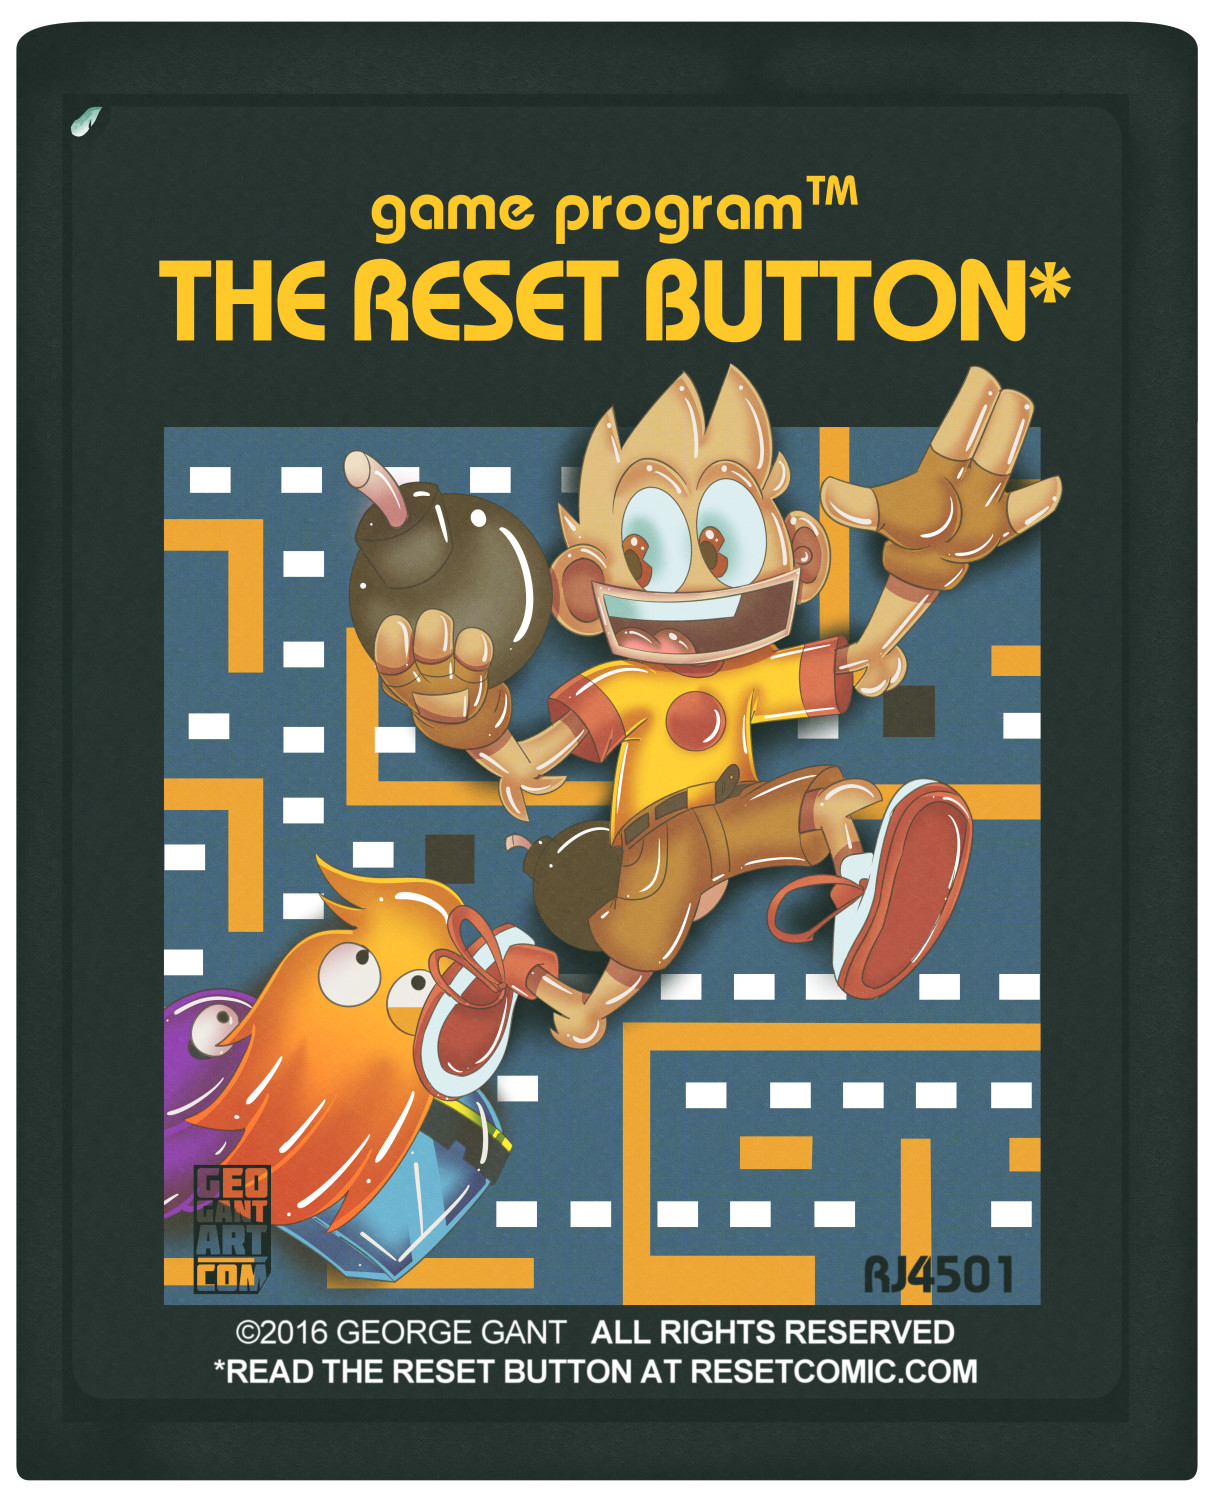 The Reset Button 2600